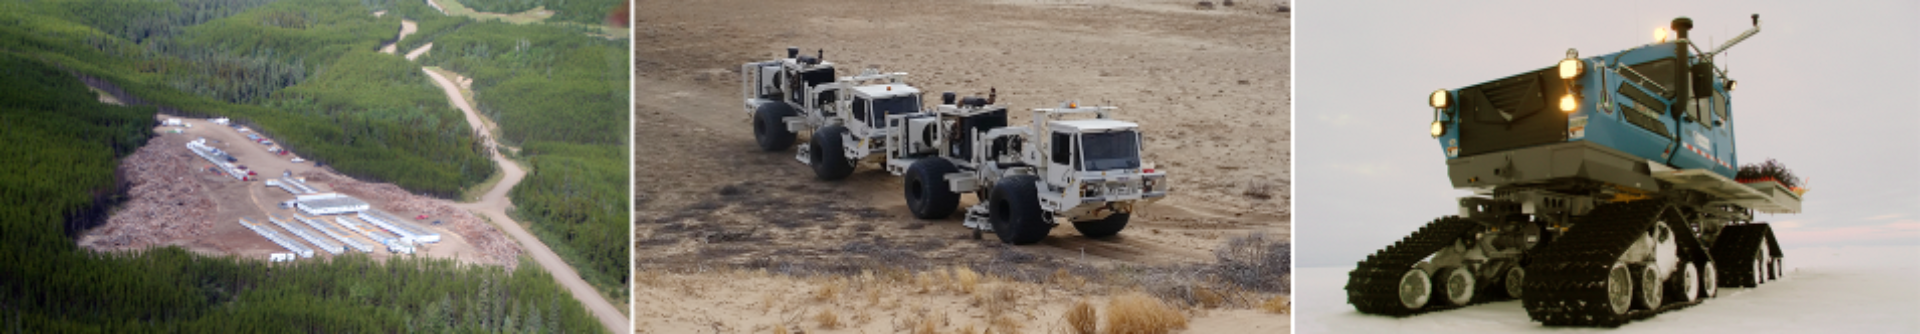 The comprehensive planning and design of a geophysical program is critical, complex and an area in which SAExploration excels.  SAExploration's fleet of vibrators ranging from 15,000 to 80,000 pounds in buggy, track and truck- mount configurations . SAExploration can meet the challenges across all operational theaters from remote arctic to urban seismic acquisition environments